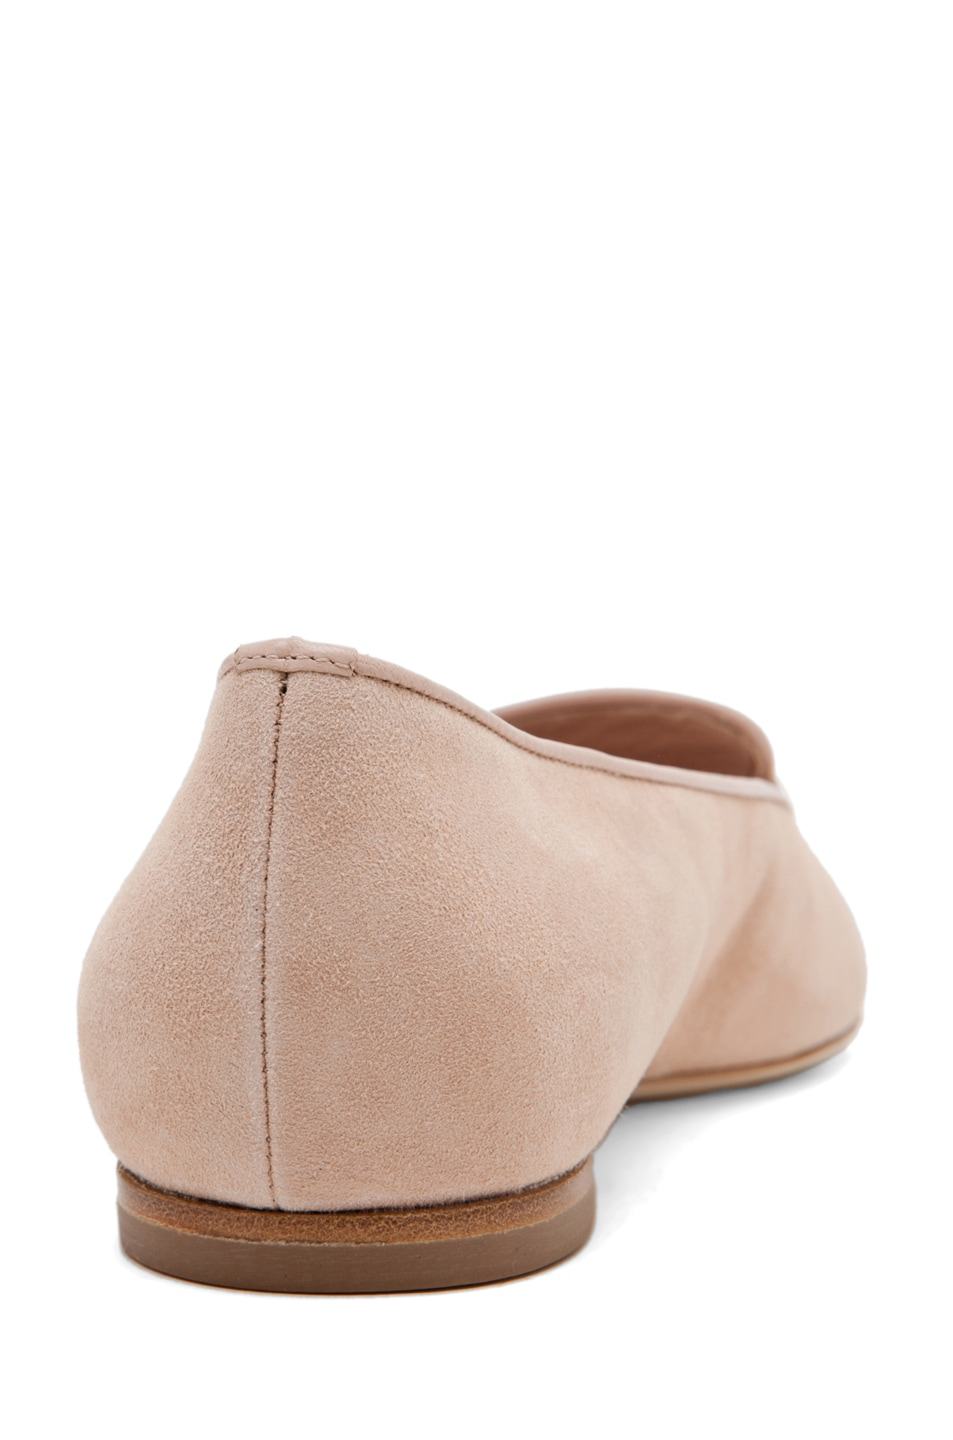 Image 3 of Alexander McQueen Skull Suede Slippers in Pale Pink & Rose